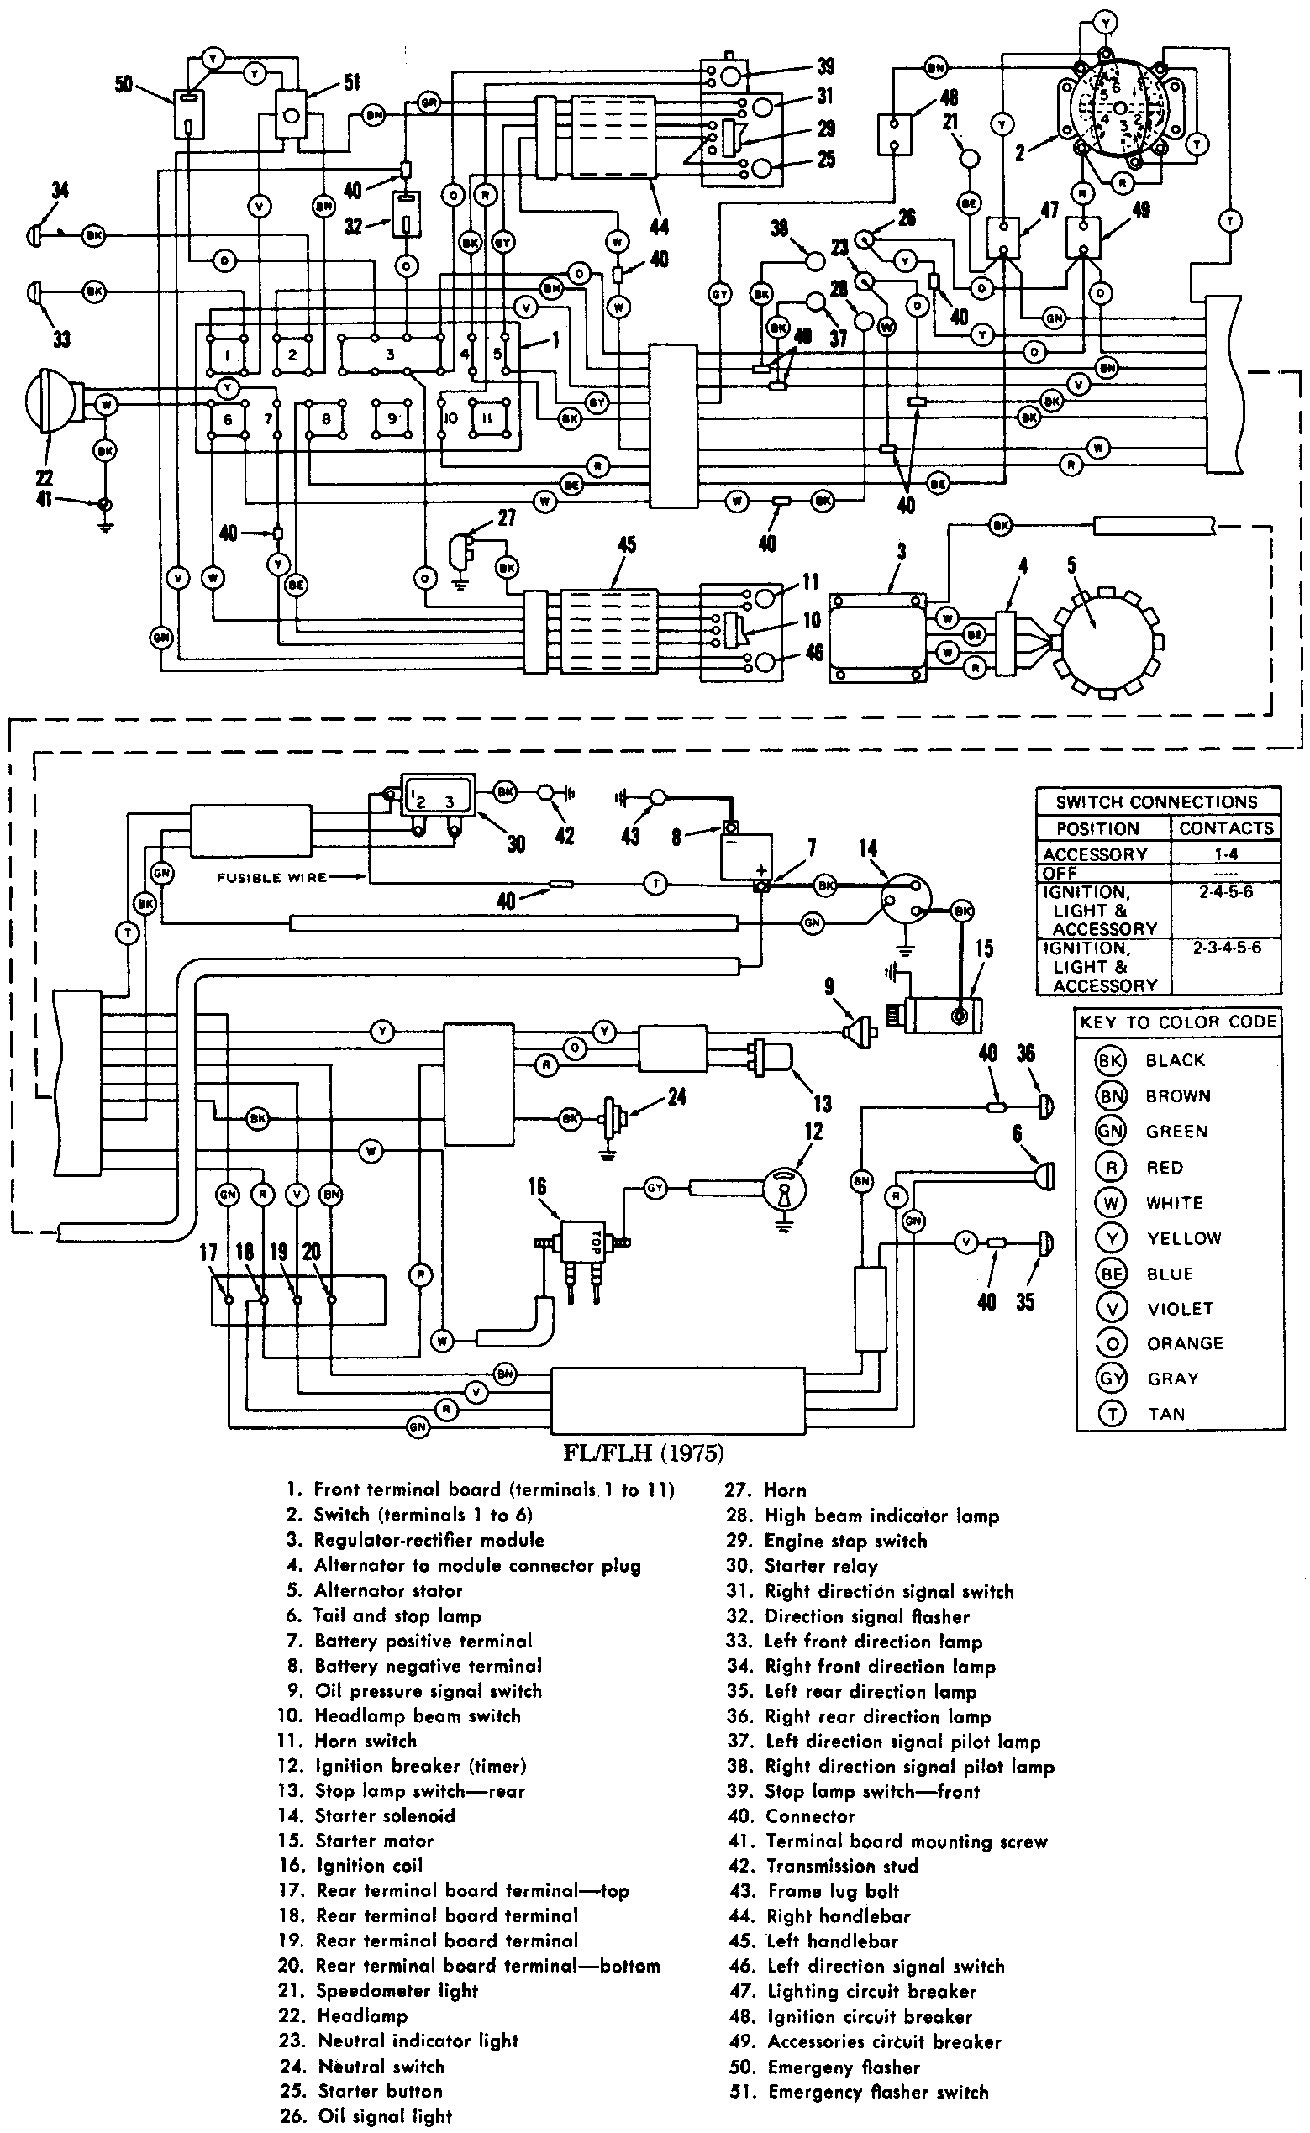 View 1968 Shovelhead Wiring Diagram PNG